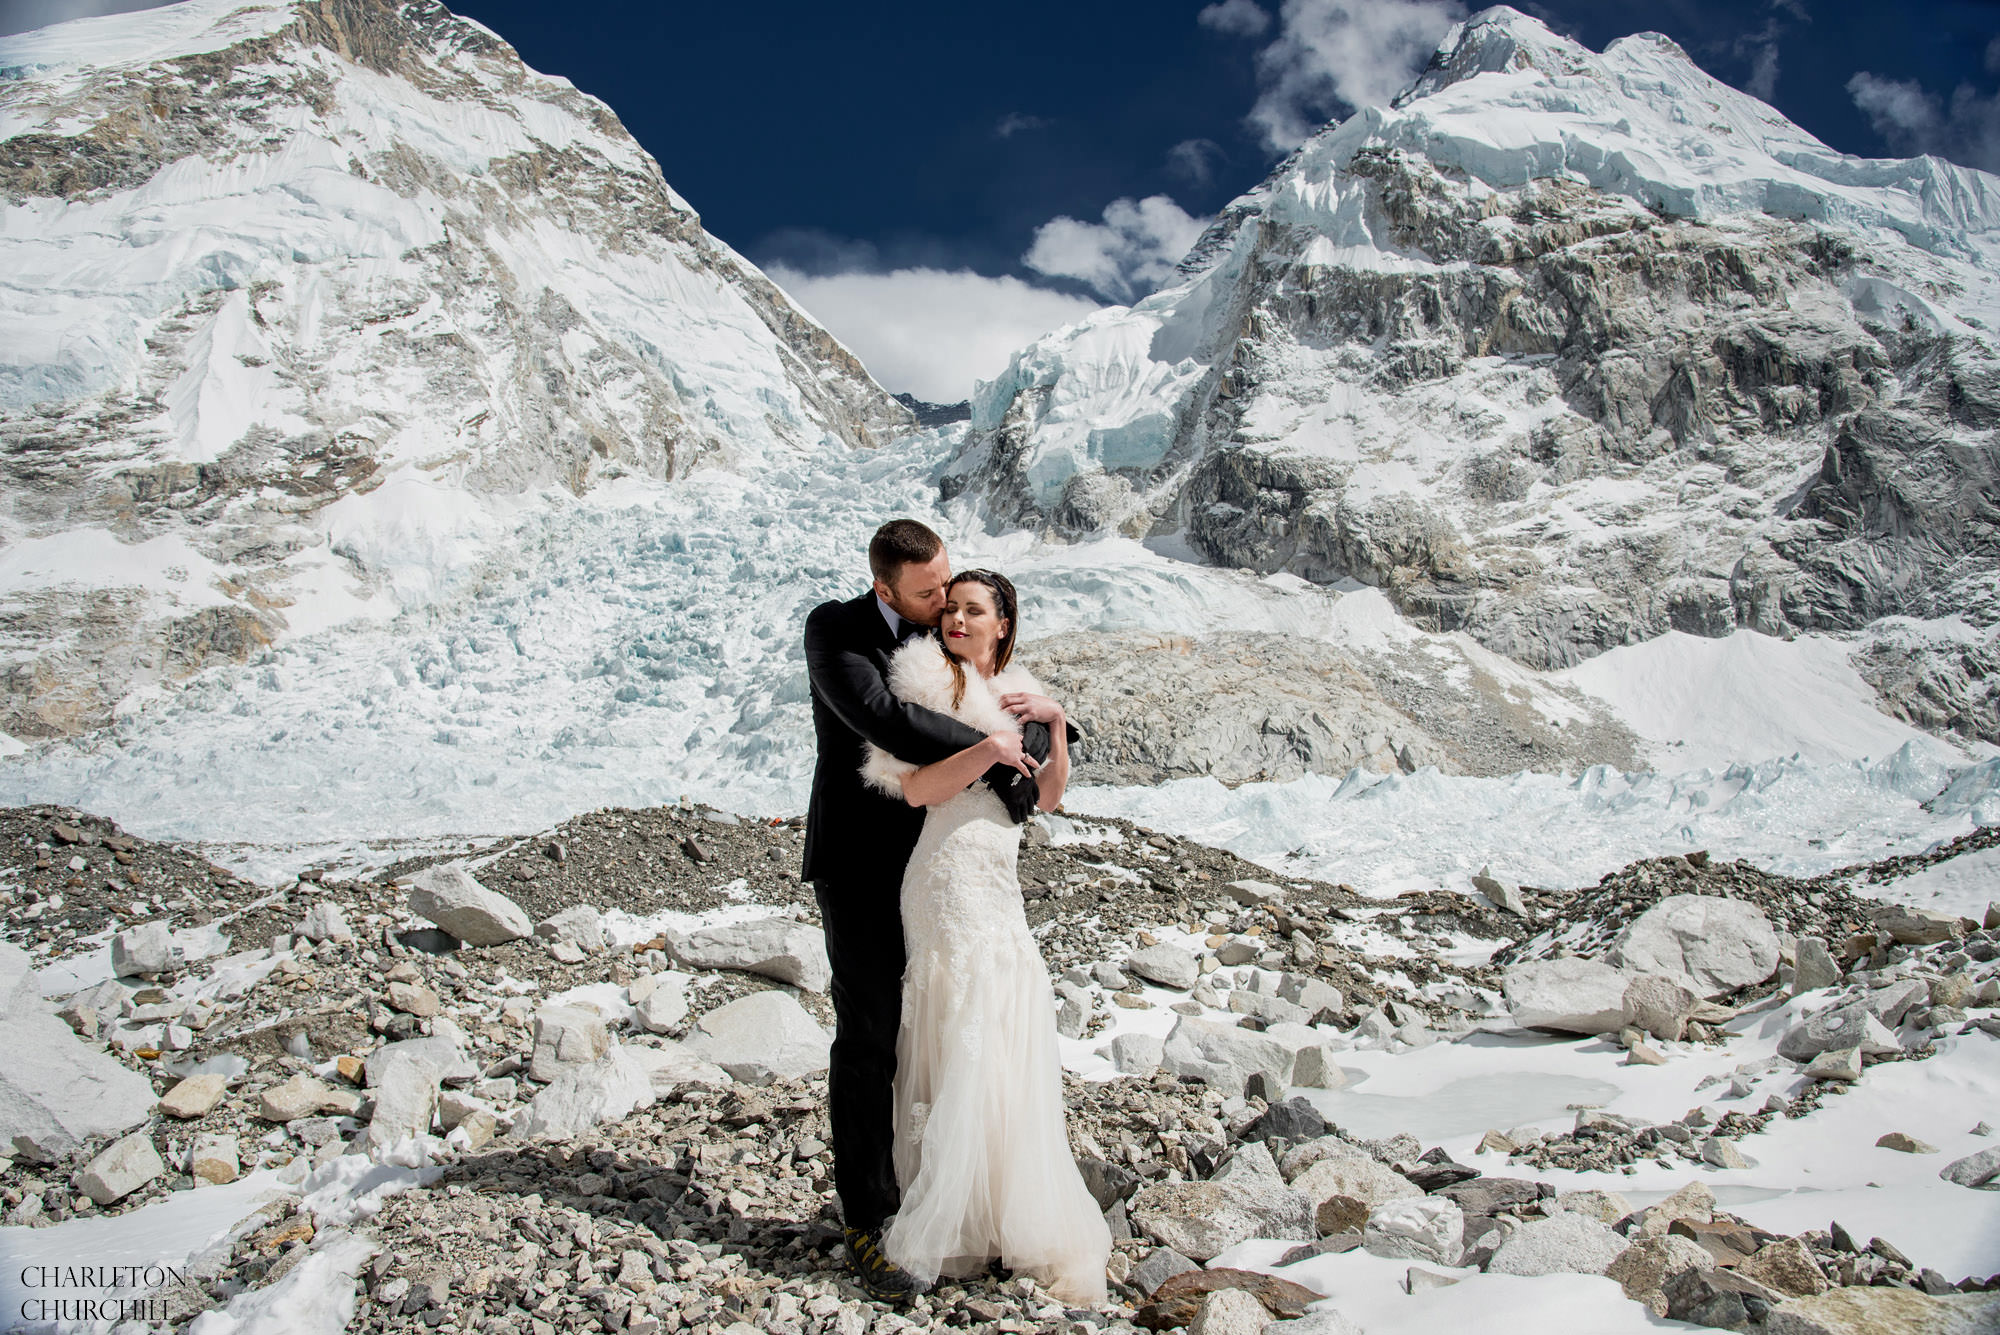 Mt. Everest base camp wedding photos of bride and groom